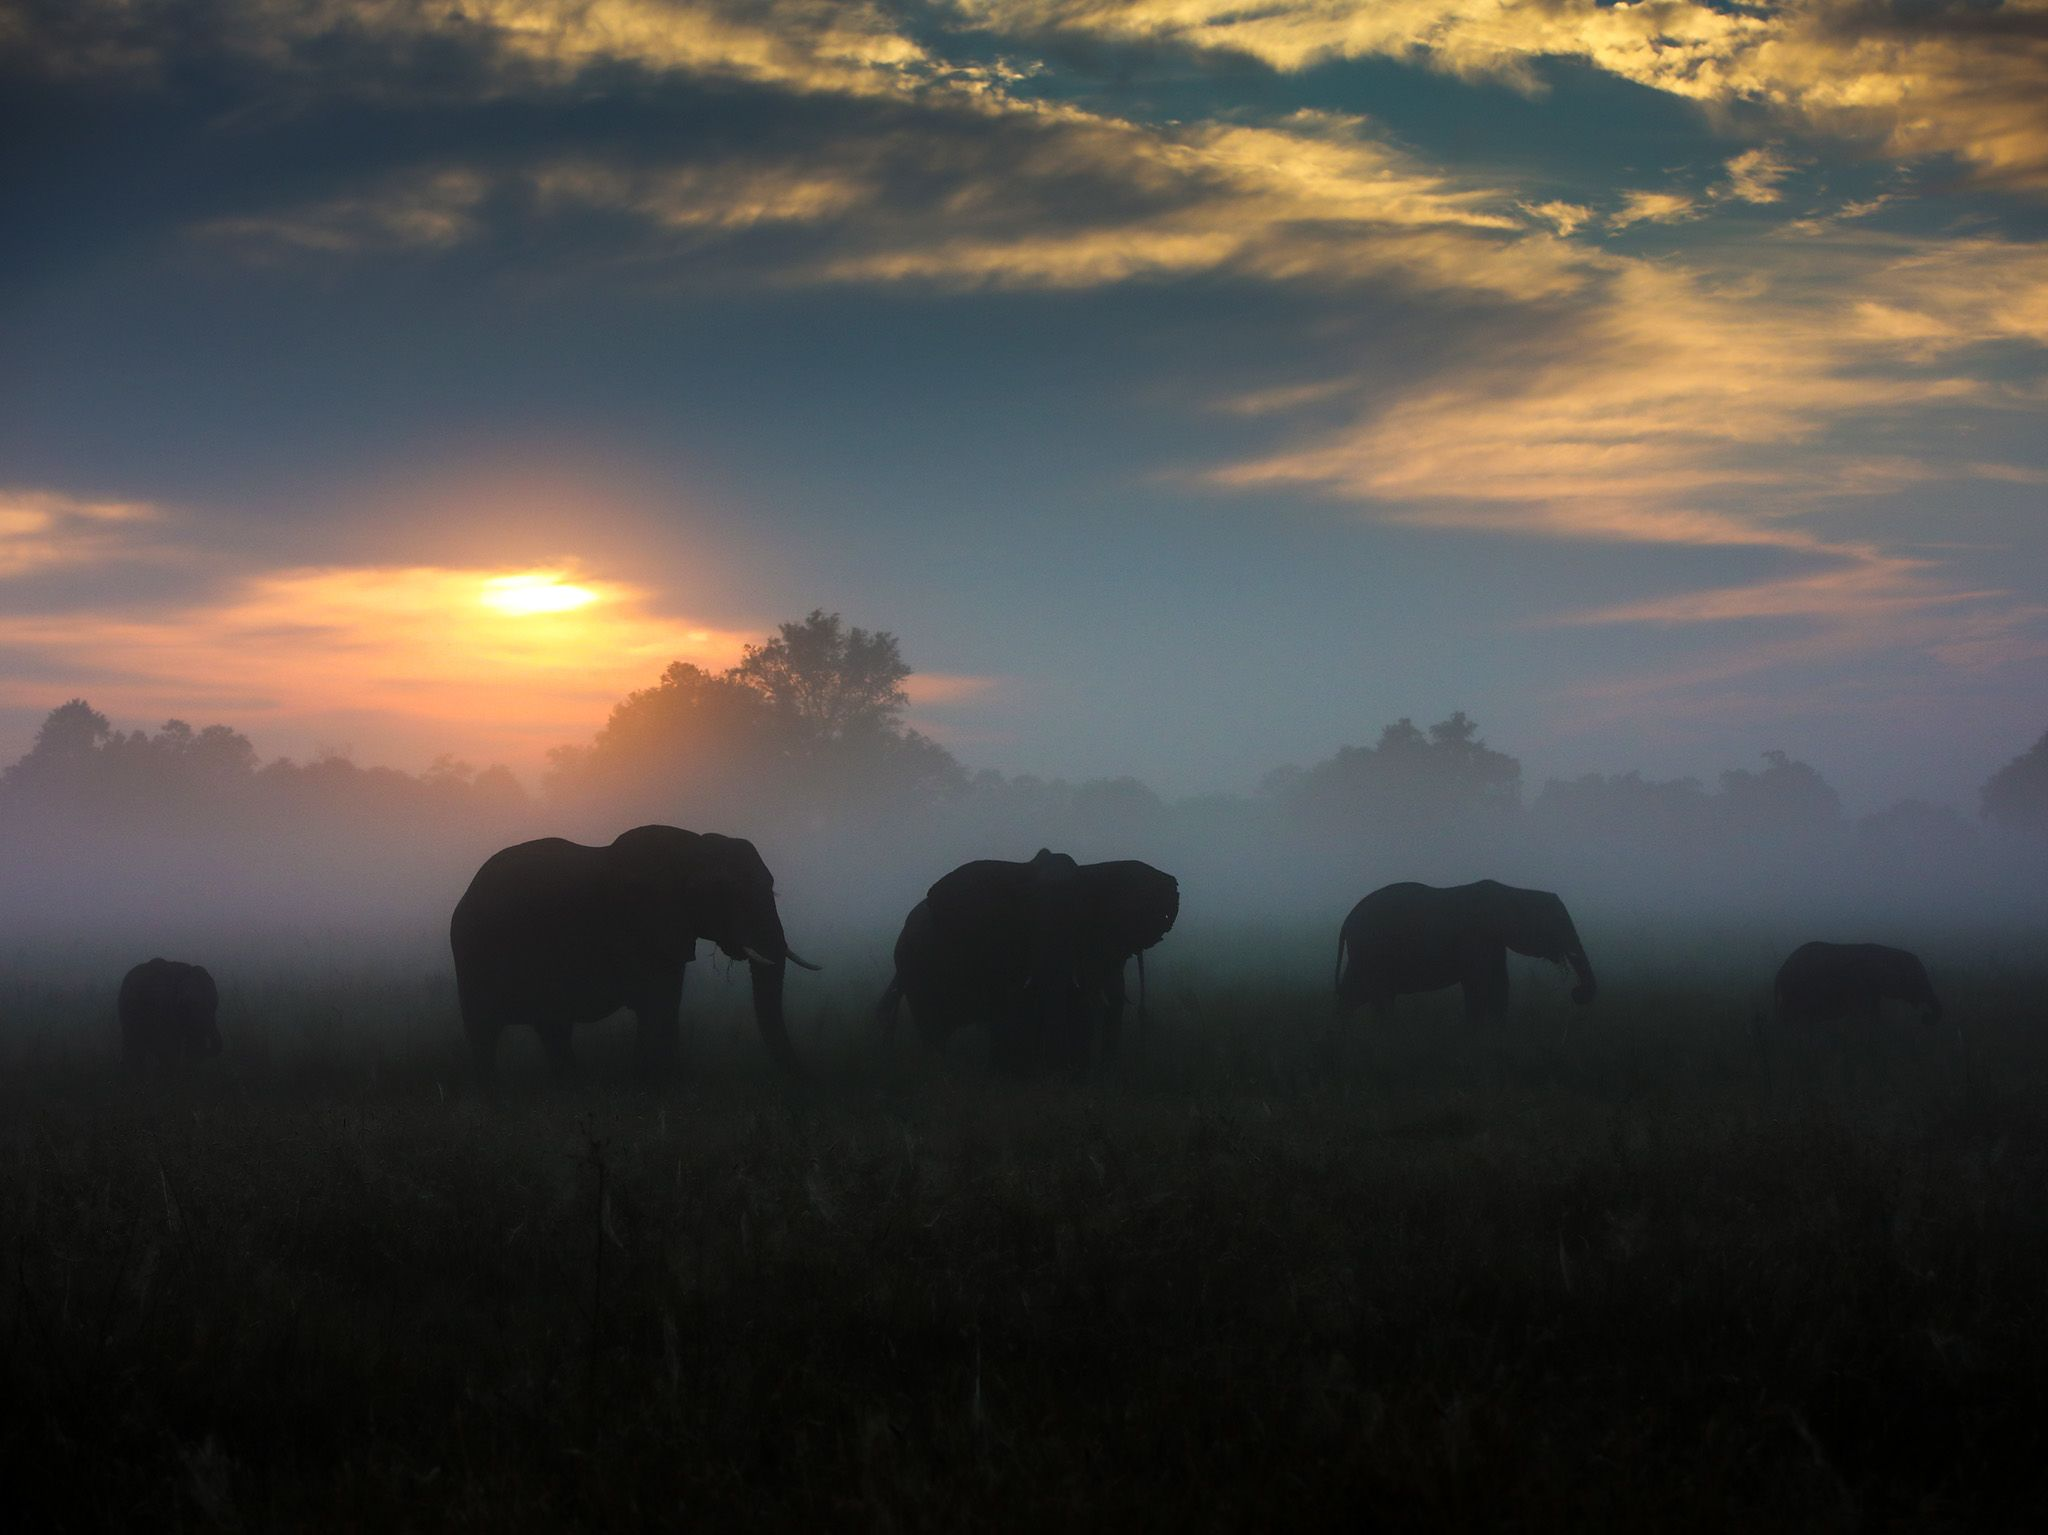 Botswana:  A herd of Elephant graze in an open floodplain surrounded by mist. The sun begins to... [Foto del giorno - novembre 2018]